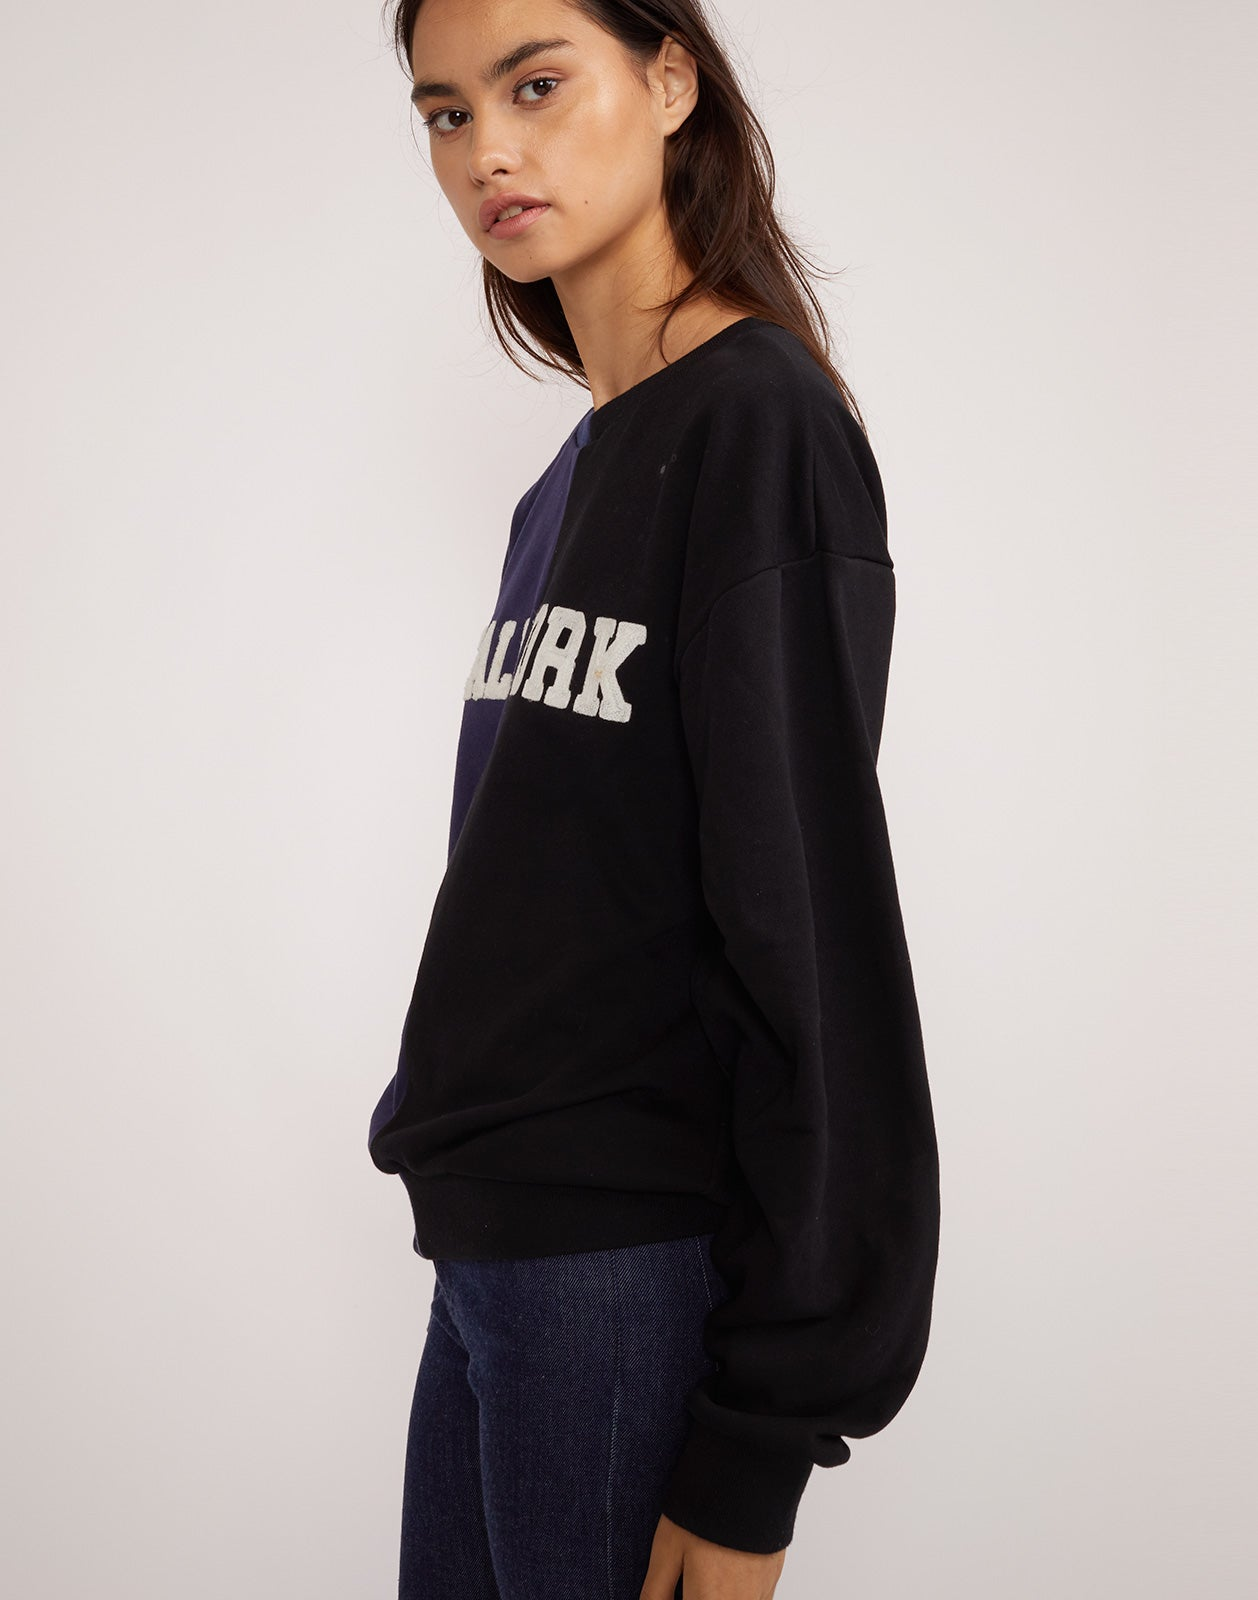 Side view of the CaliYork sweatshirt in half navy half black.